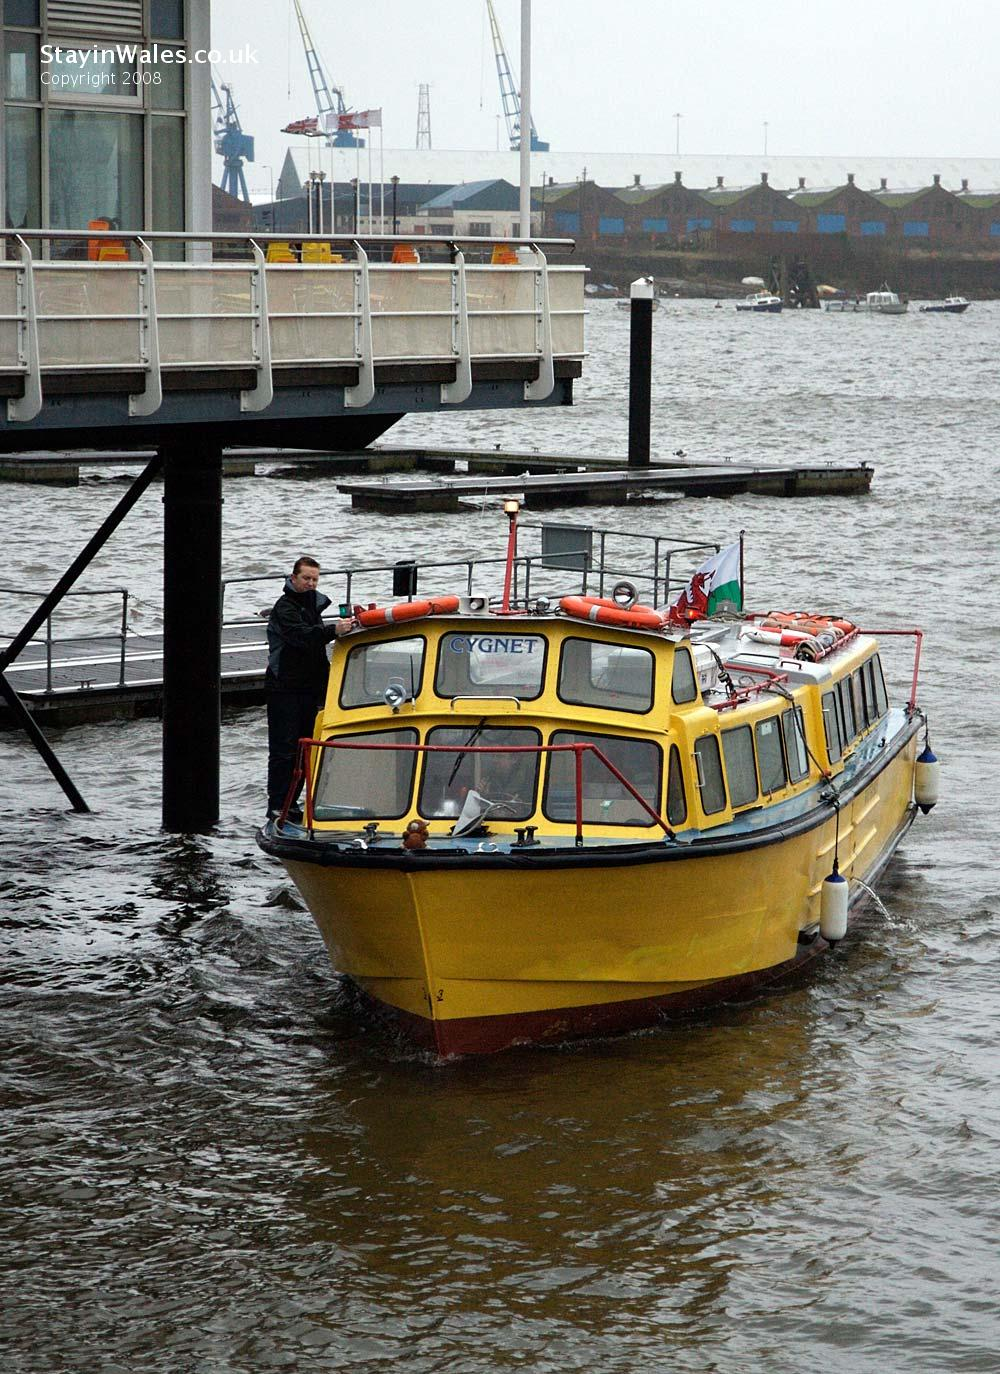 Cardiff Bay Waterbus at Mermaid Quay